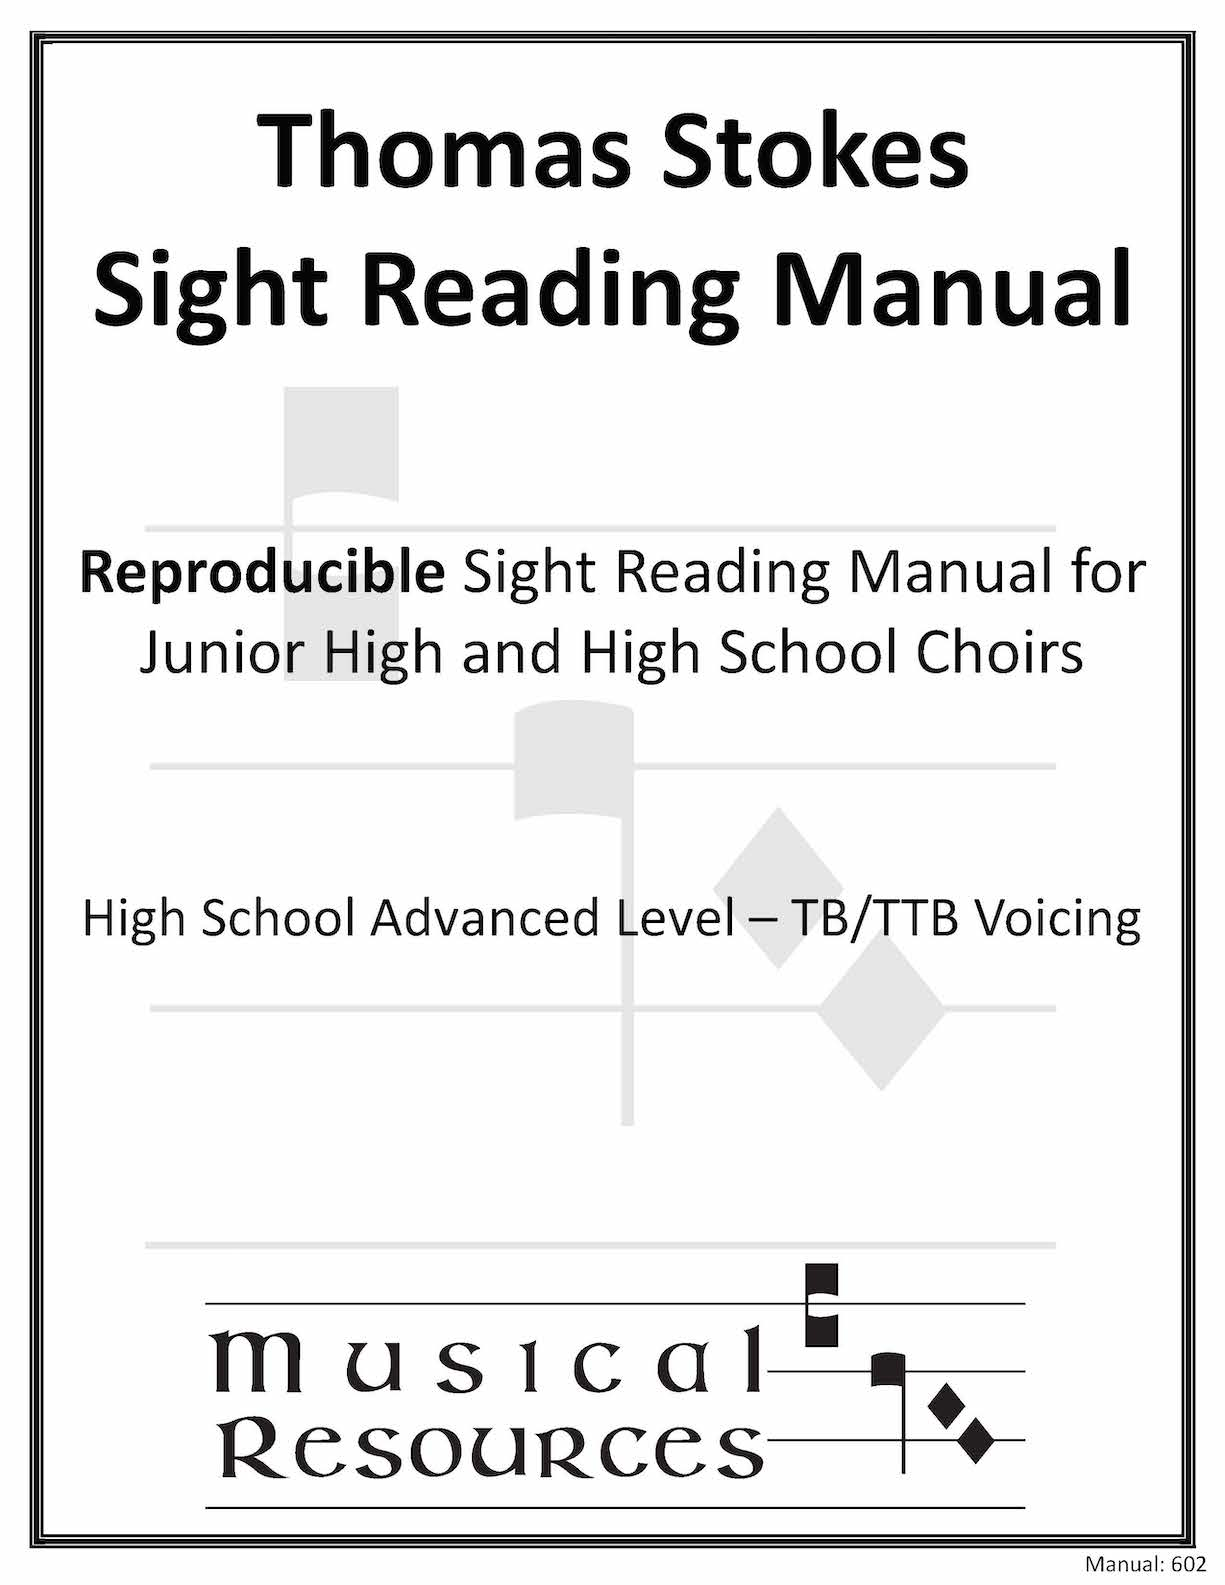 Picture of (Digital) Thomas Stokes Sightreading Manual #602 - TB/TTB High School Advanced